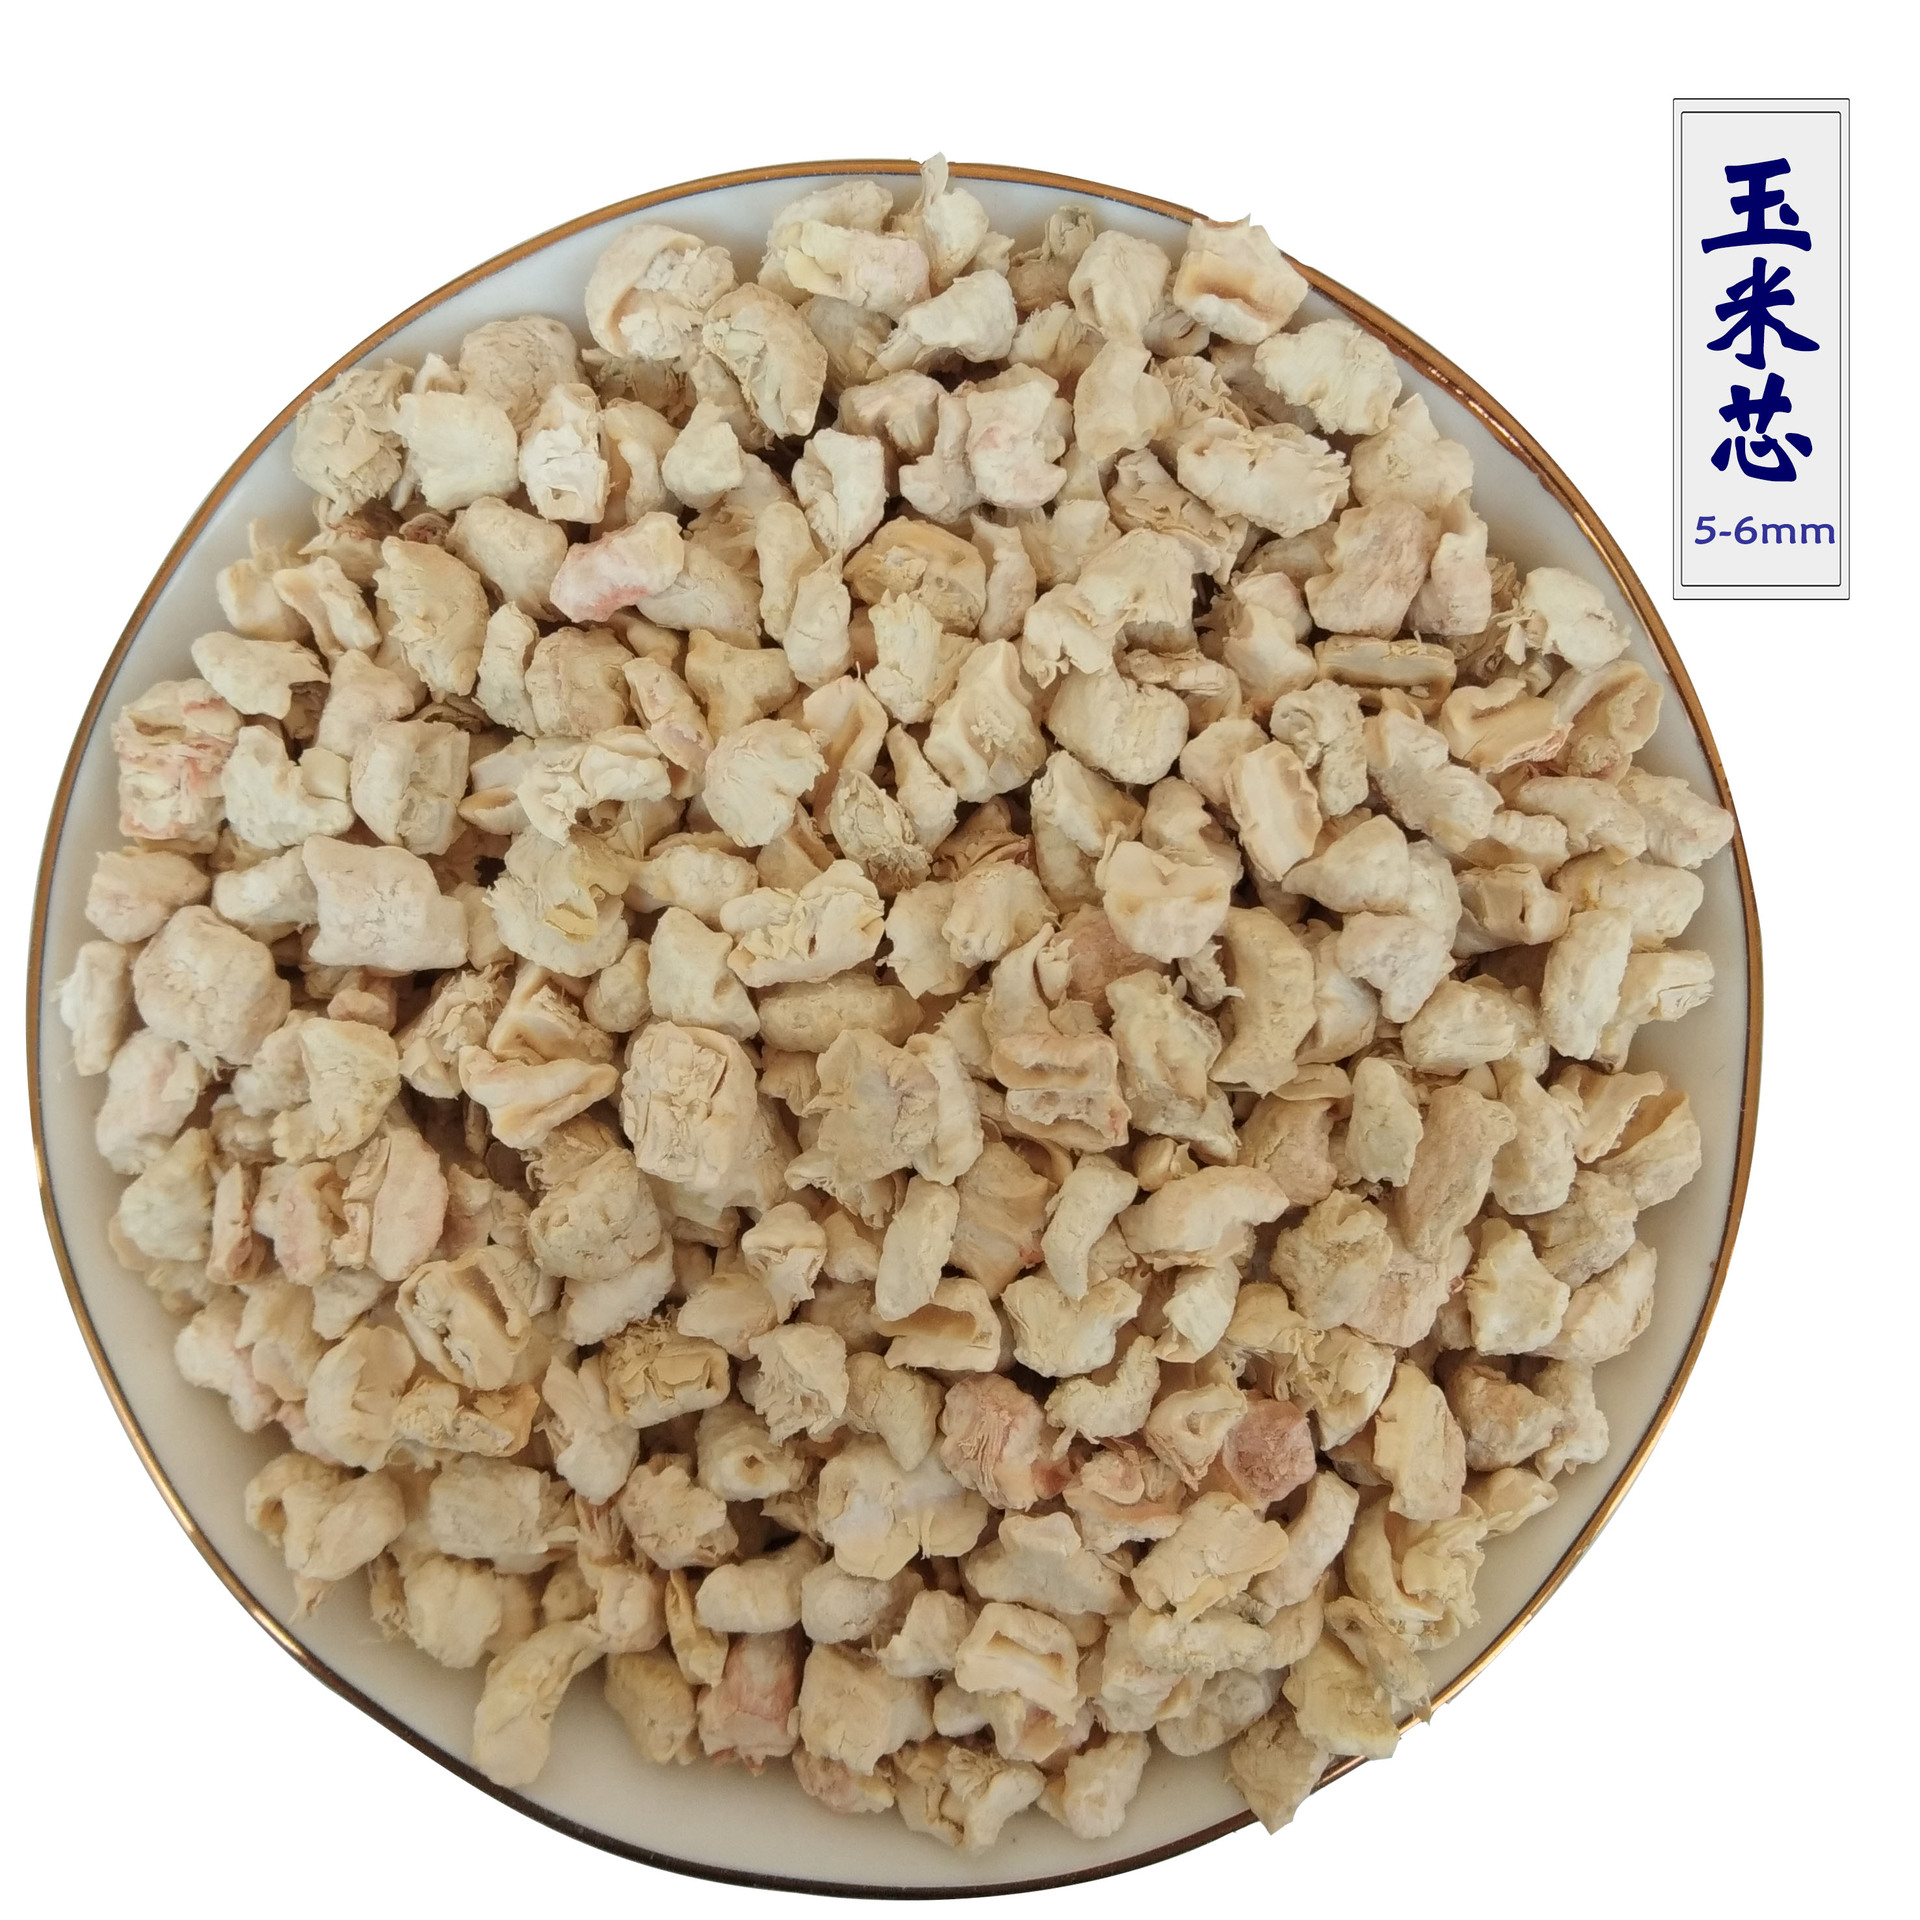 MAOYUAN Sales of corncob abrasives, corncob particles for polishing glasses buttons, corncobs for ha